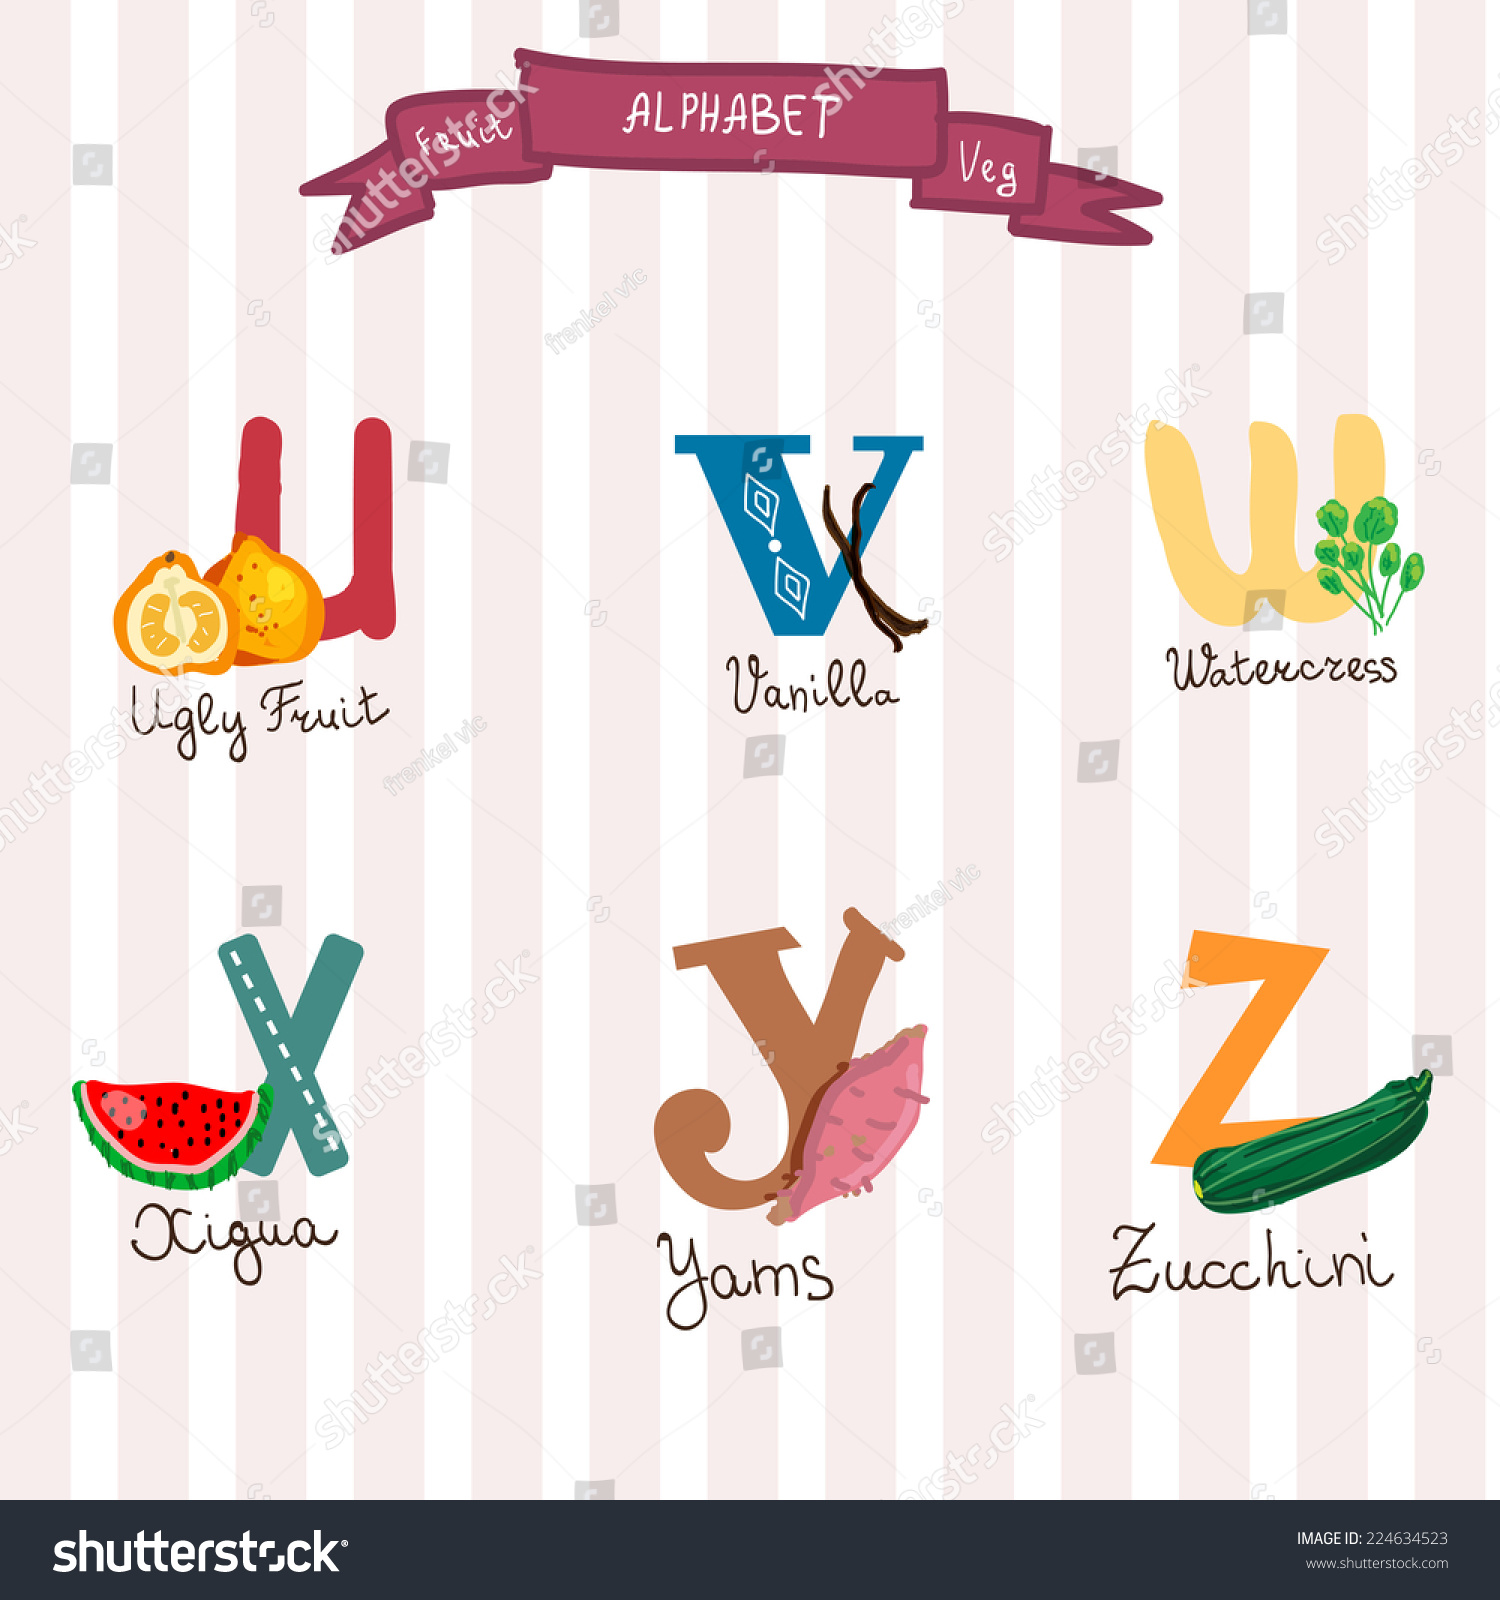 Plants That Start With The Letter Q